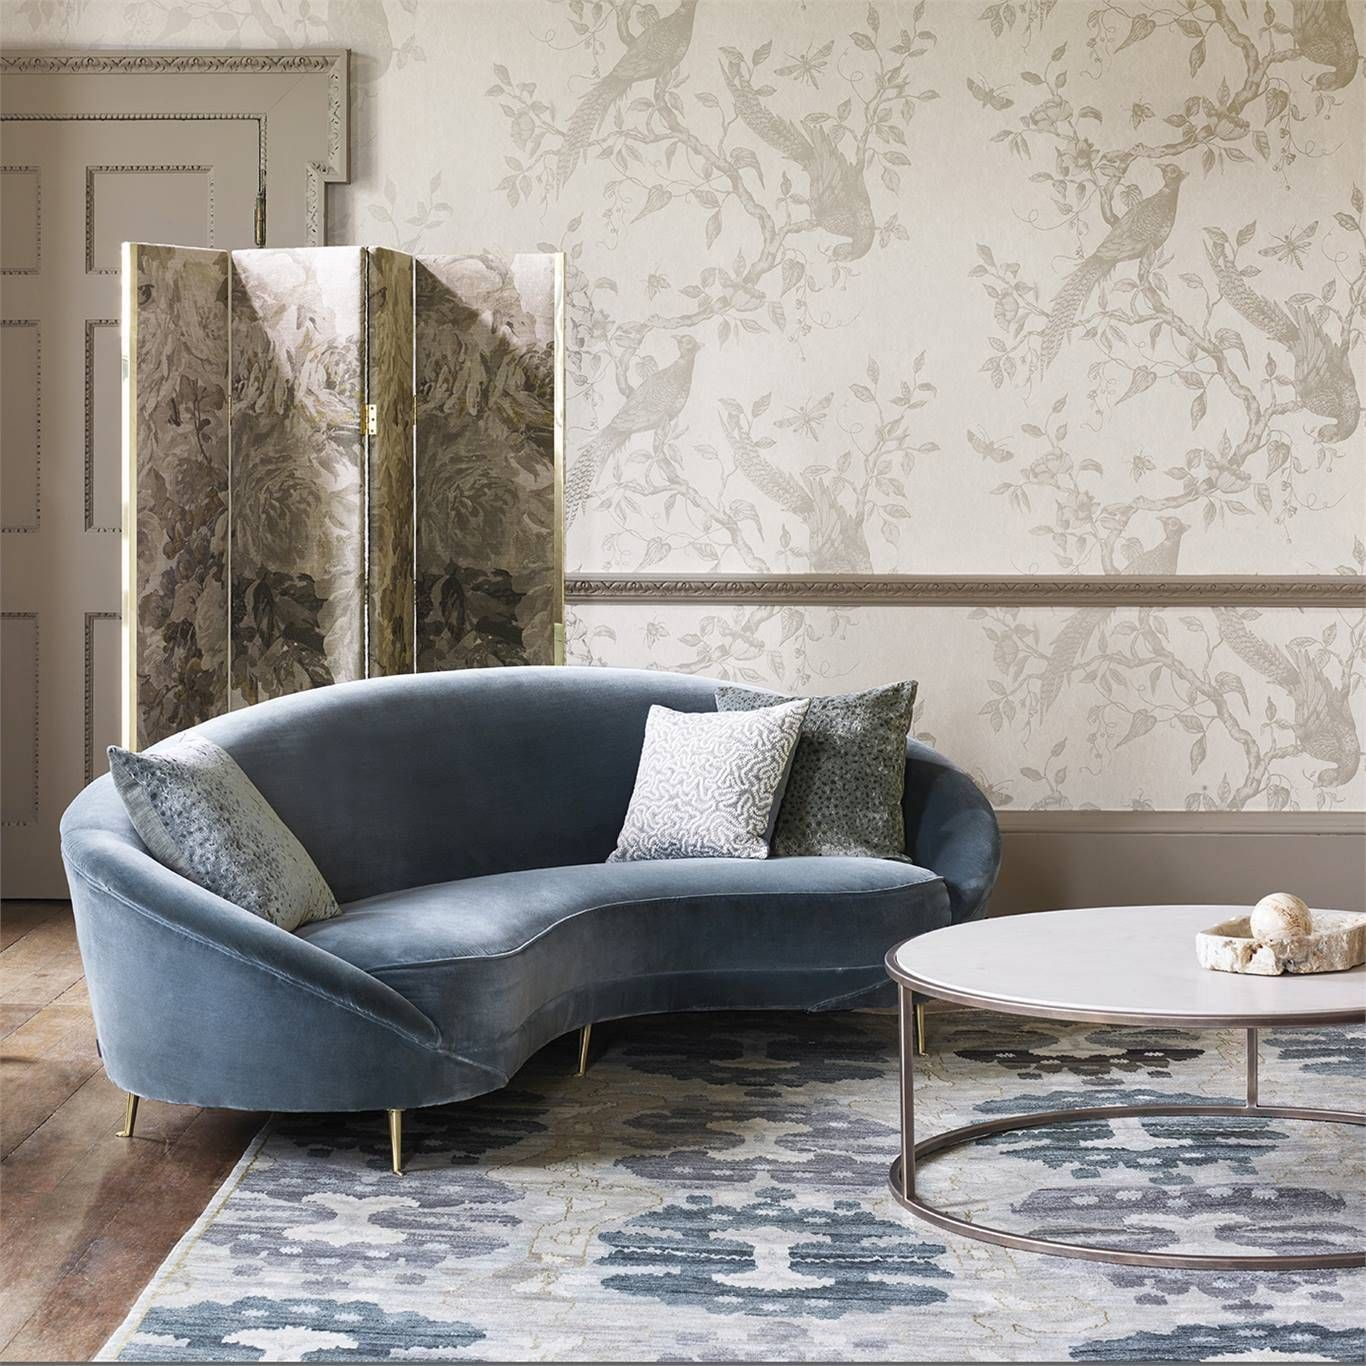 Zoffany Darnley Snow Wallpaper 312848 Country house